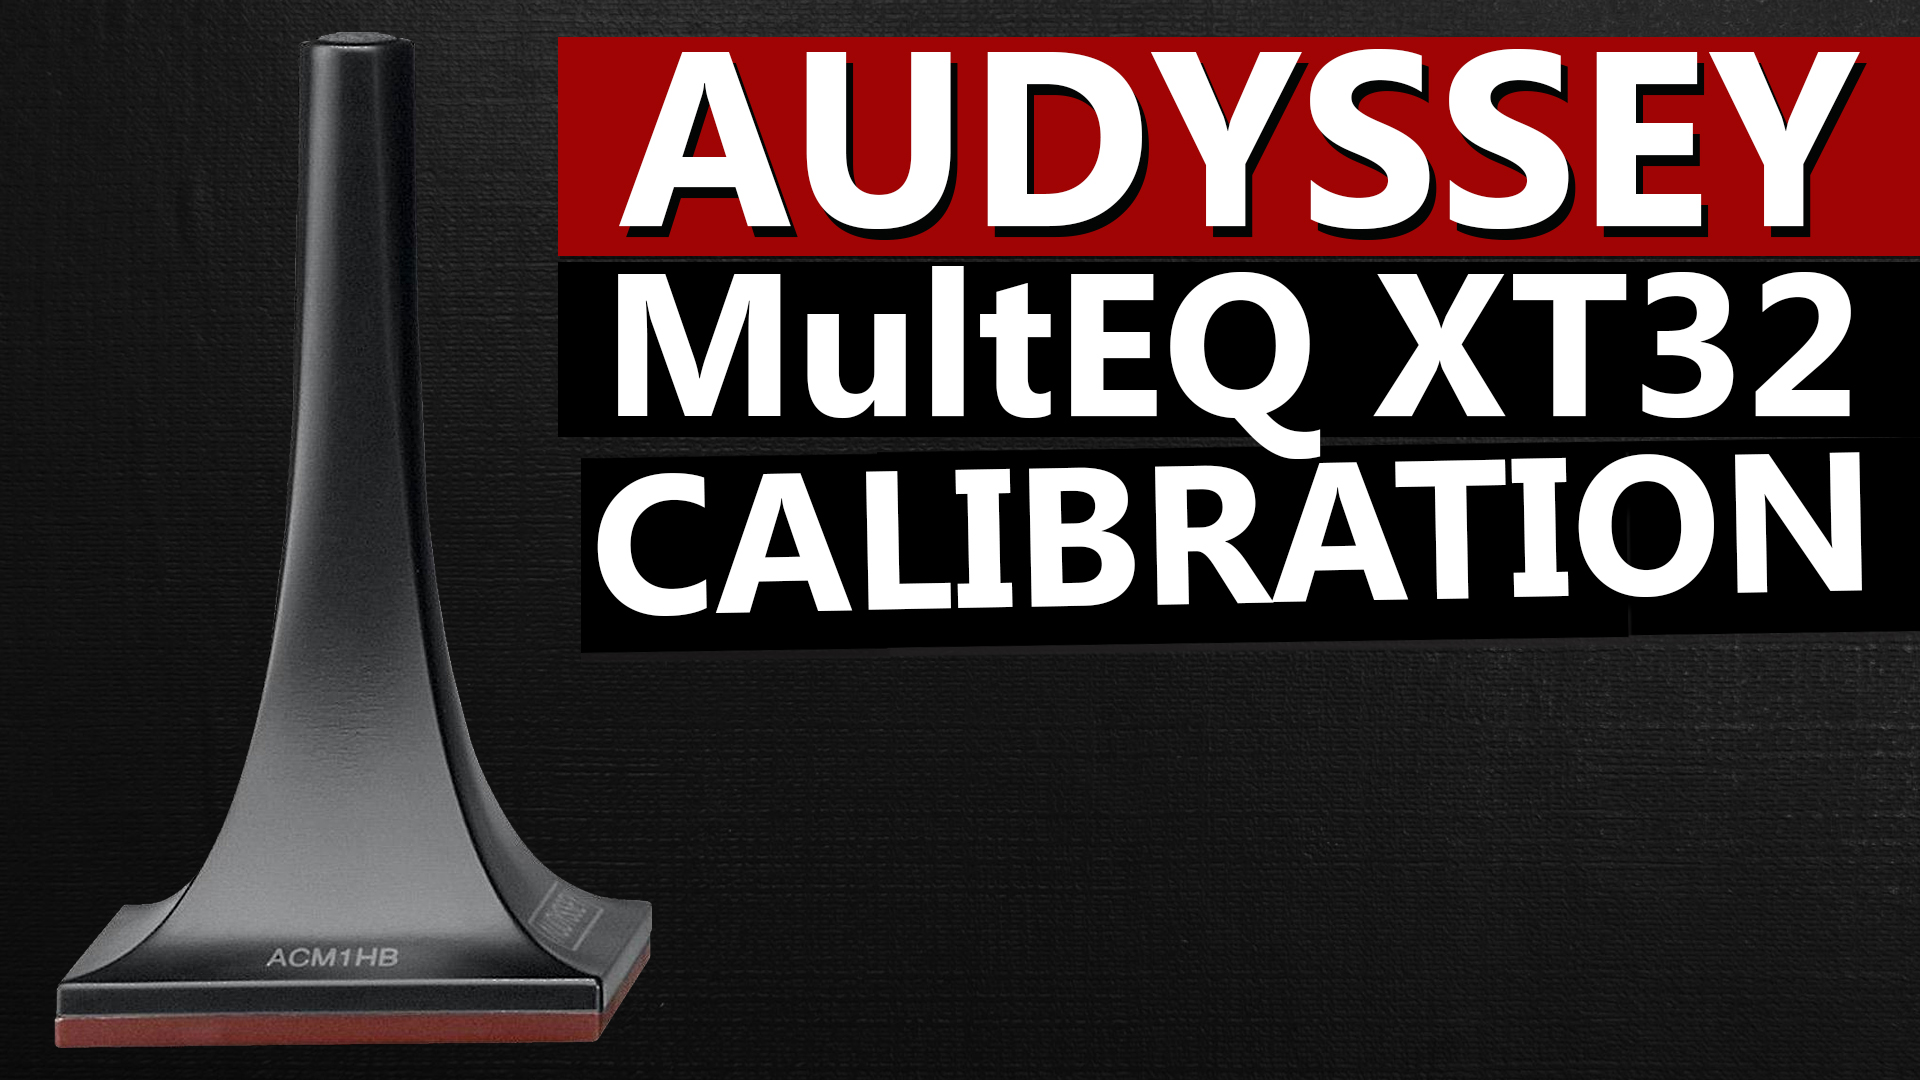 Audyssey MultEQ XT32 Setup and Calibration with the Marantz SR8012